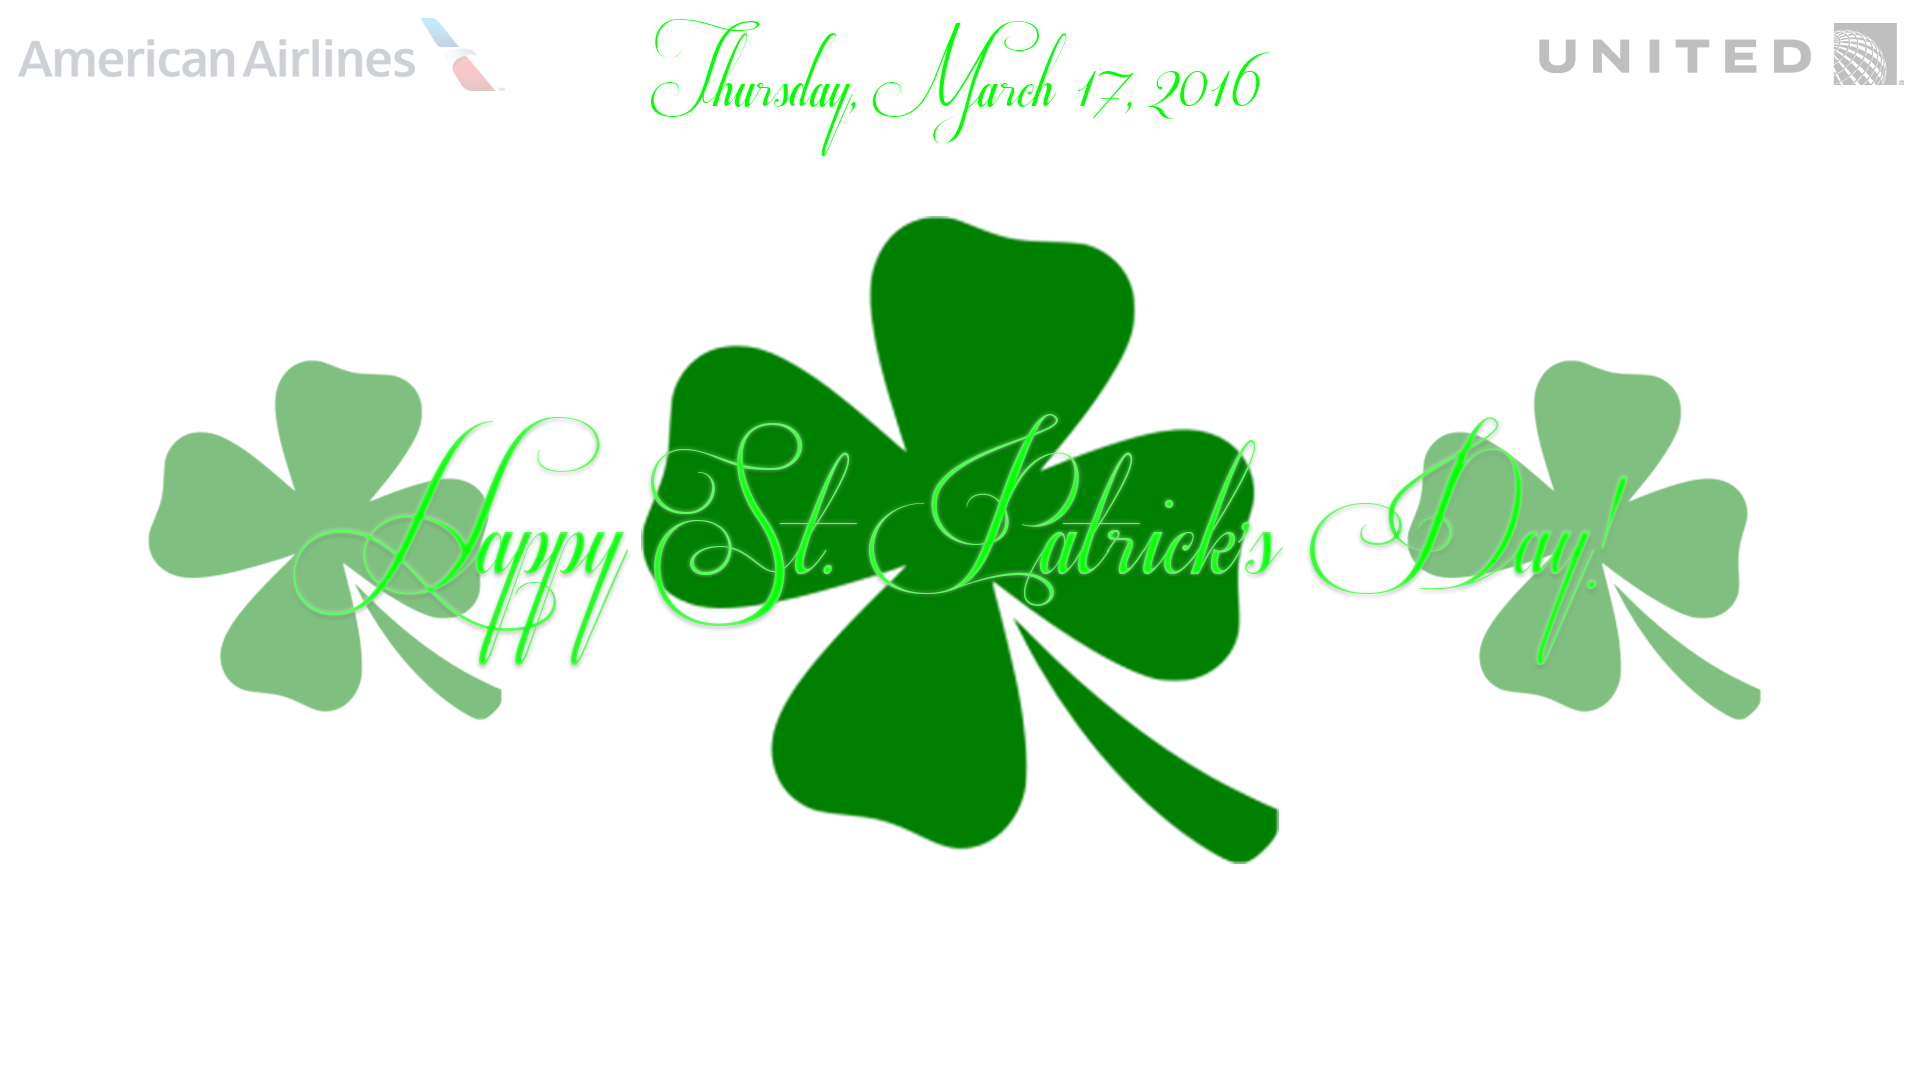 happy_st__patrick_s_day_2016_wallpaper_by_allenacnguyen-d9vimds.png